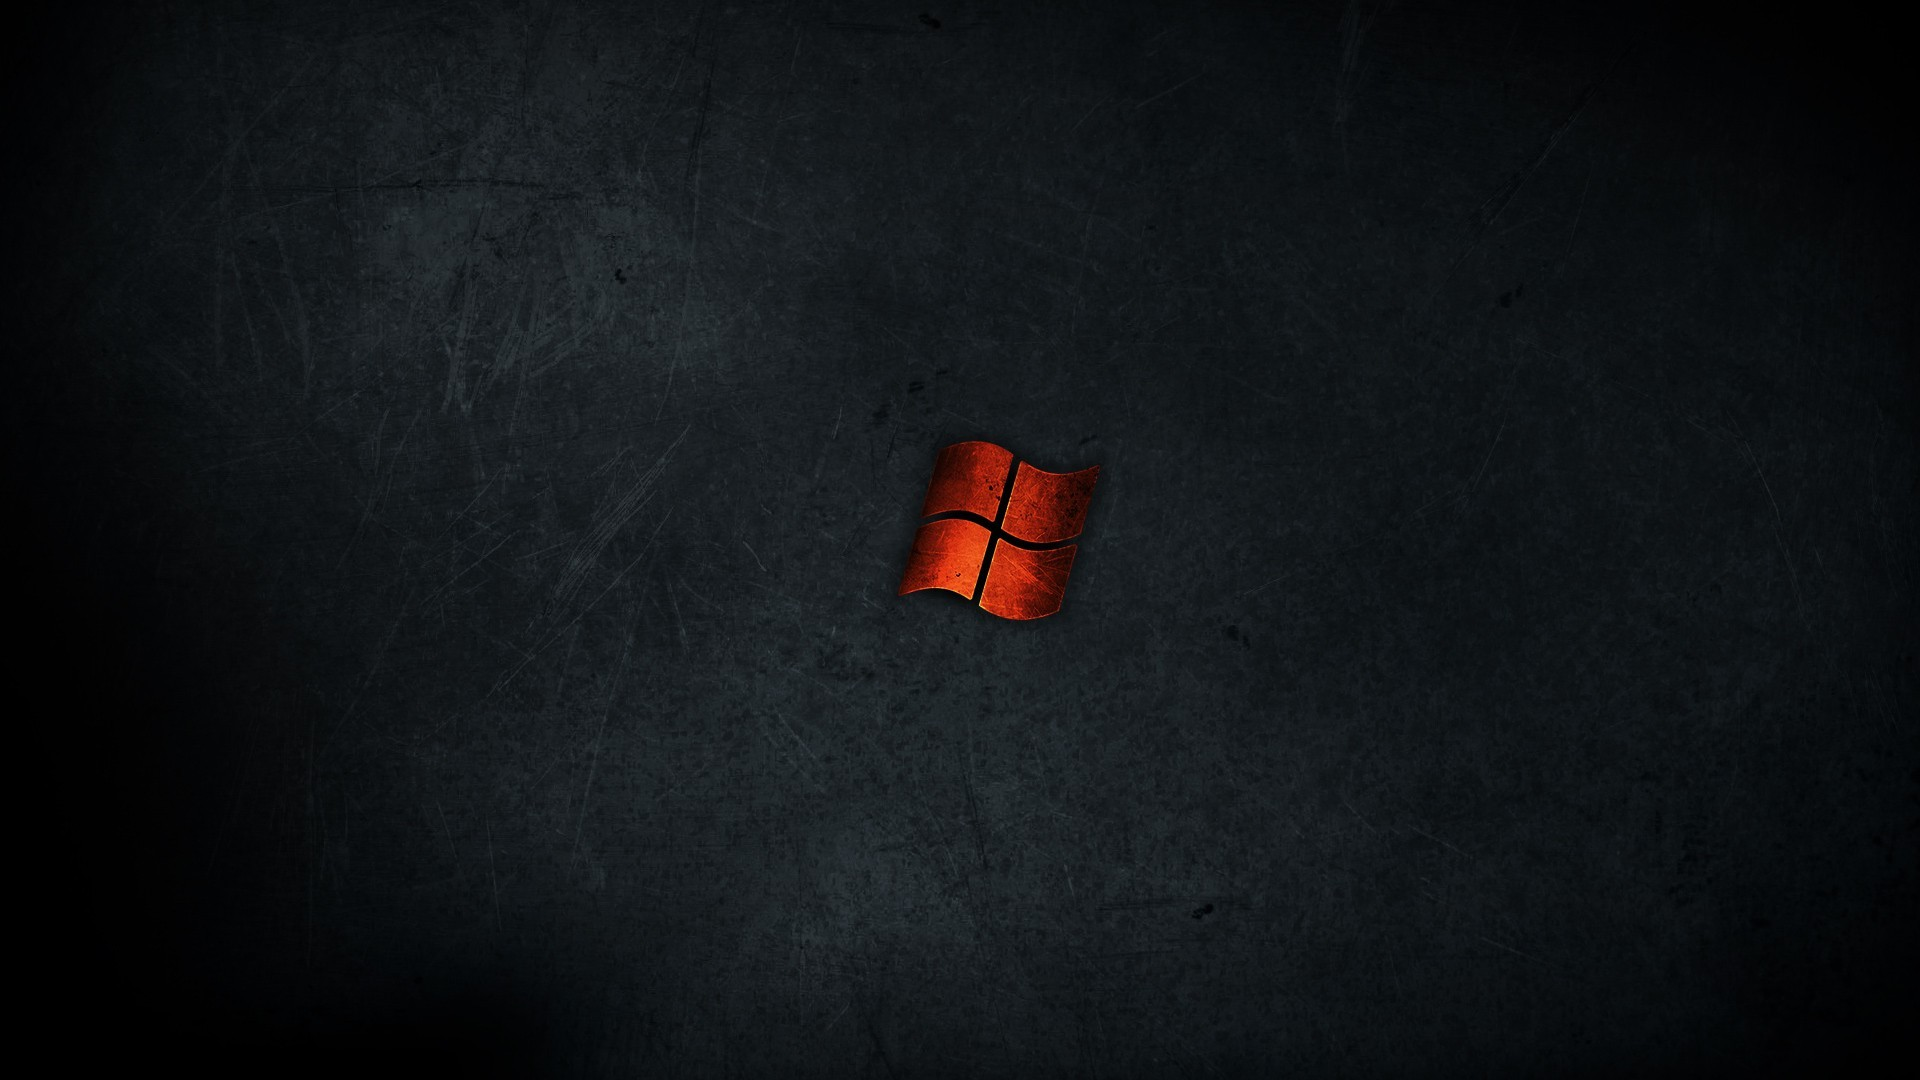 Microsoft Windows  HD Computer  4k Wallpapers  Images  Backgrounds     Microsoft Windows